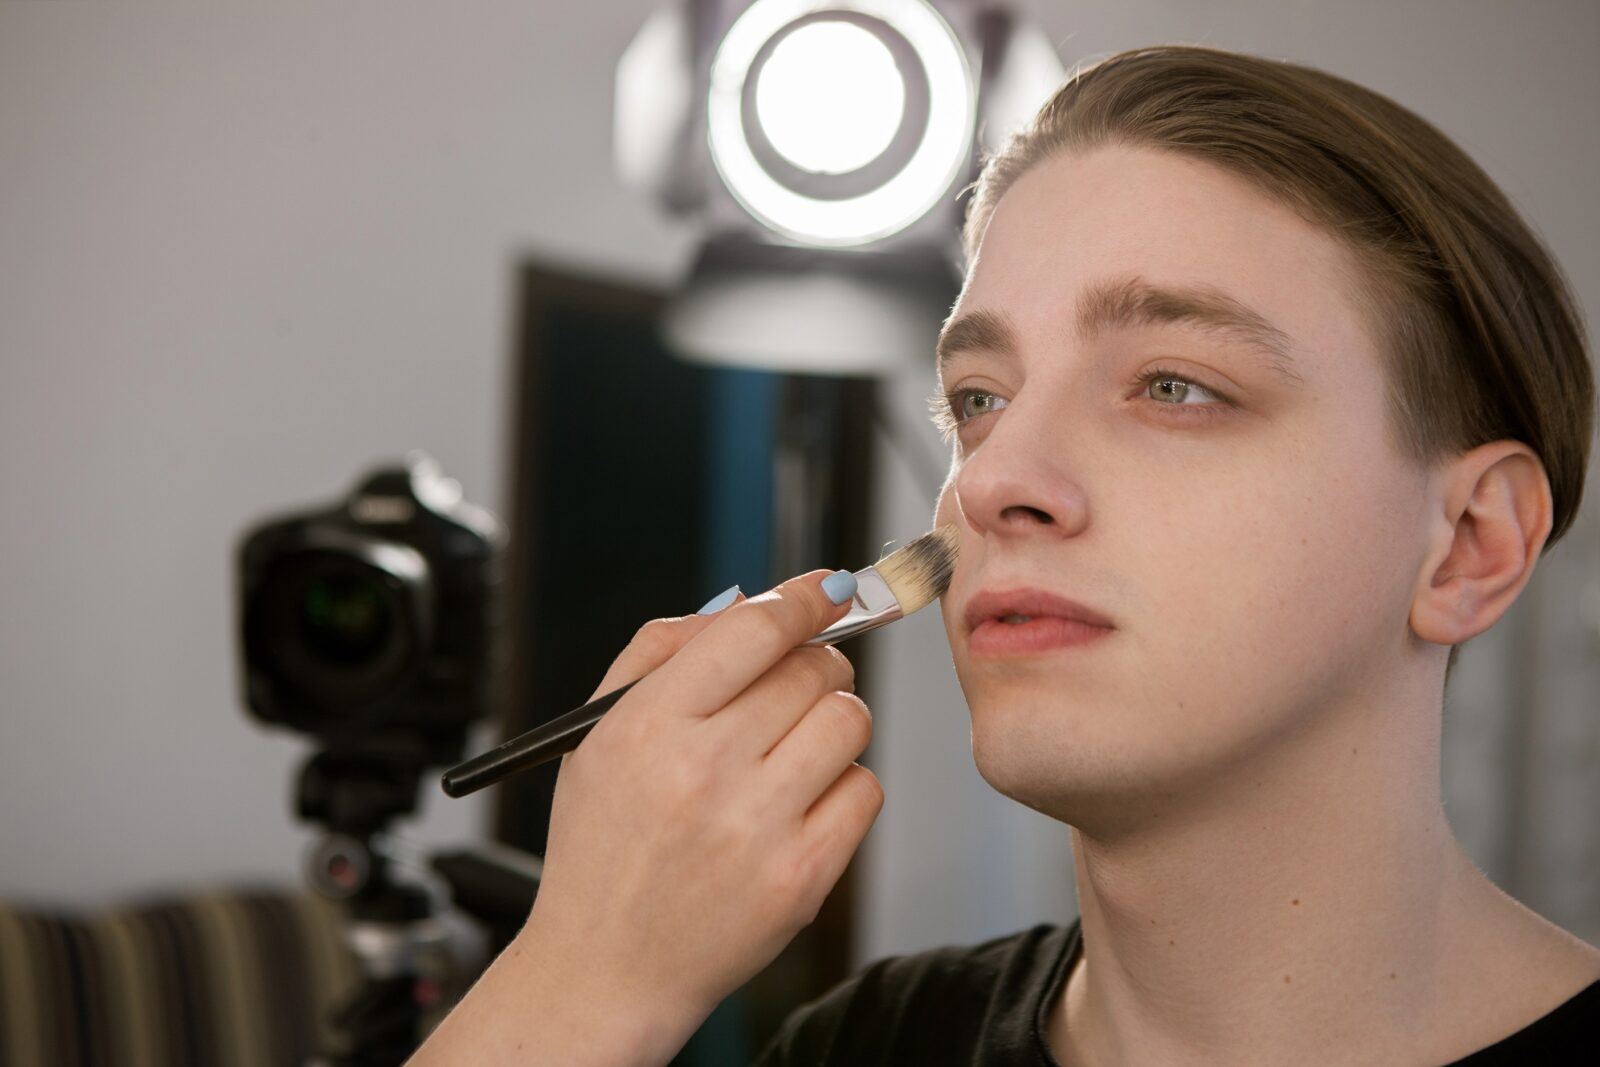 makeup artist putting makeup on male model's face